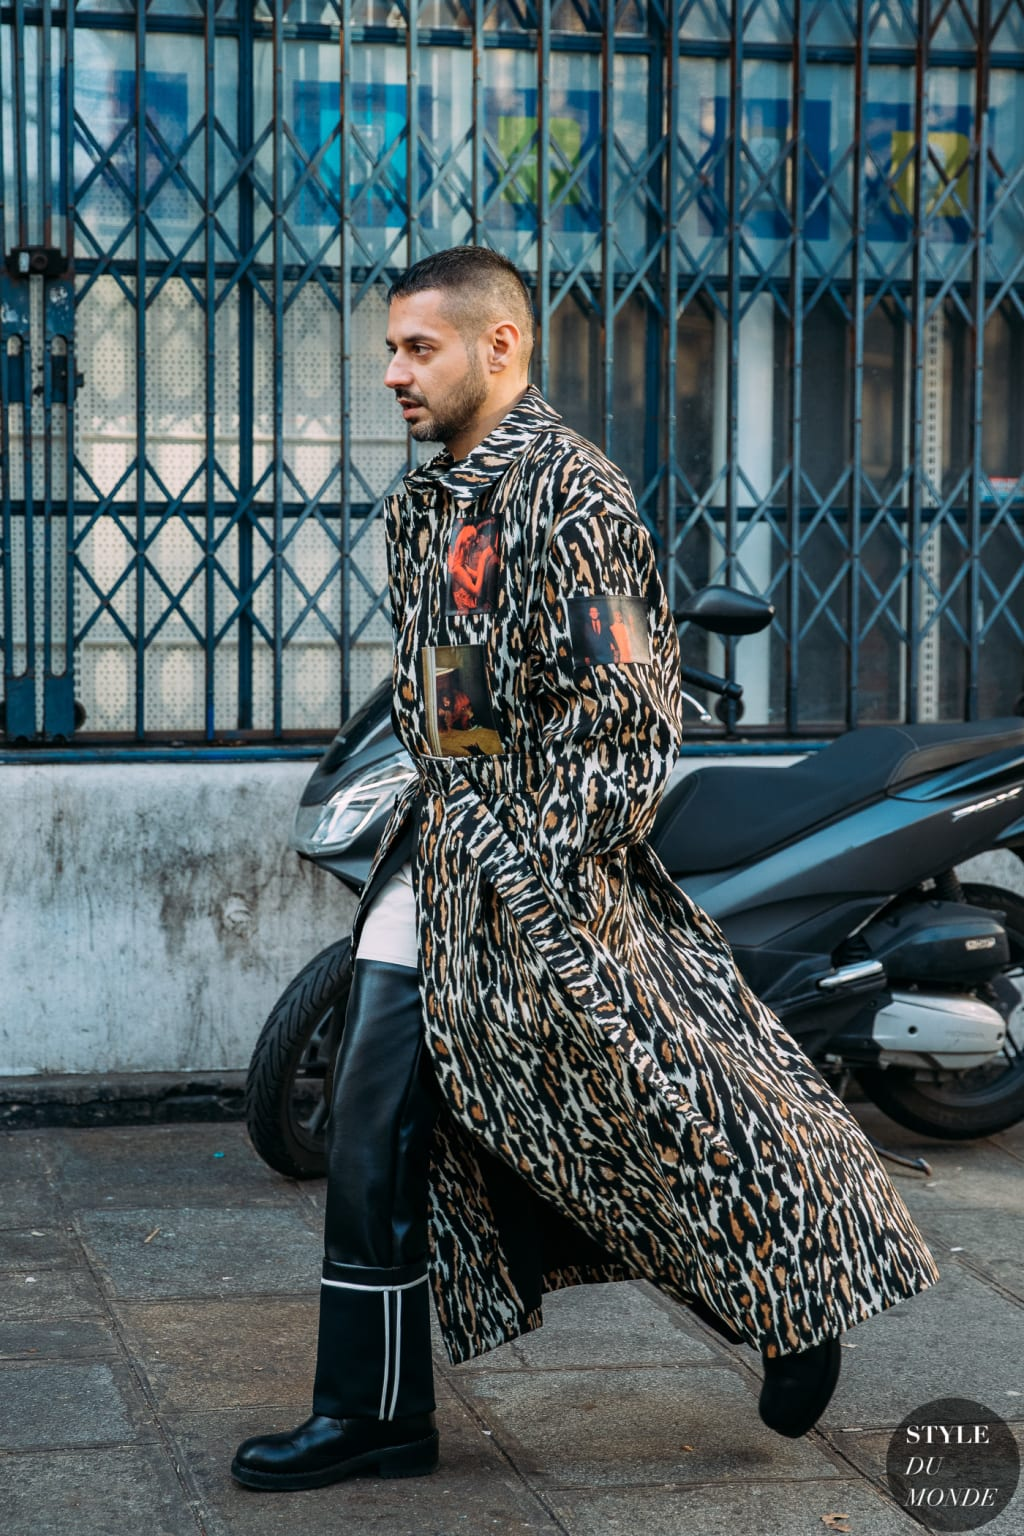 Top 5 Hottest Choices in Men's Fashion Right Now